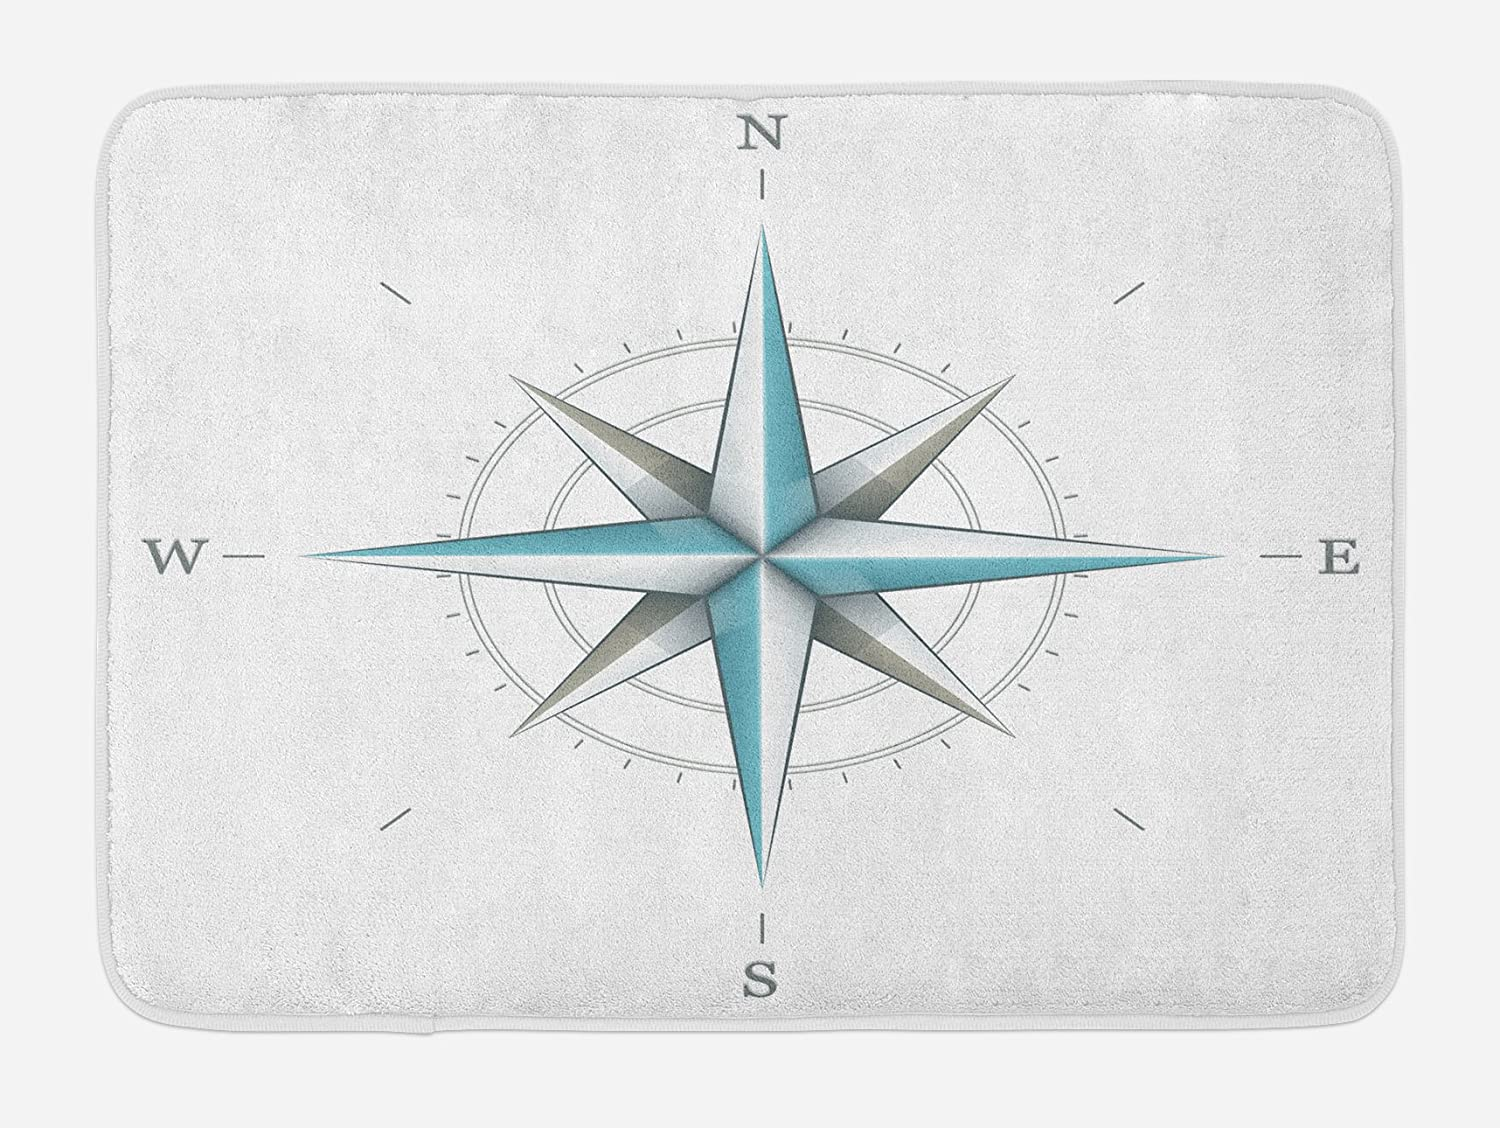 Ambesonne Compass Bath Mat, Antique Wind Rose Diagram for Cardinal Directions Axis of Earth Illustration, Plush Bathroom Decor Mat with Non Slip Backing, 29.5